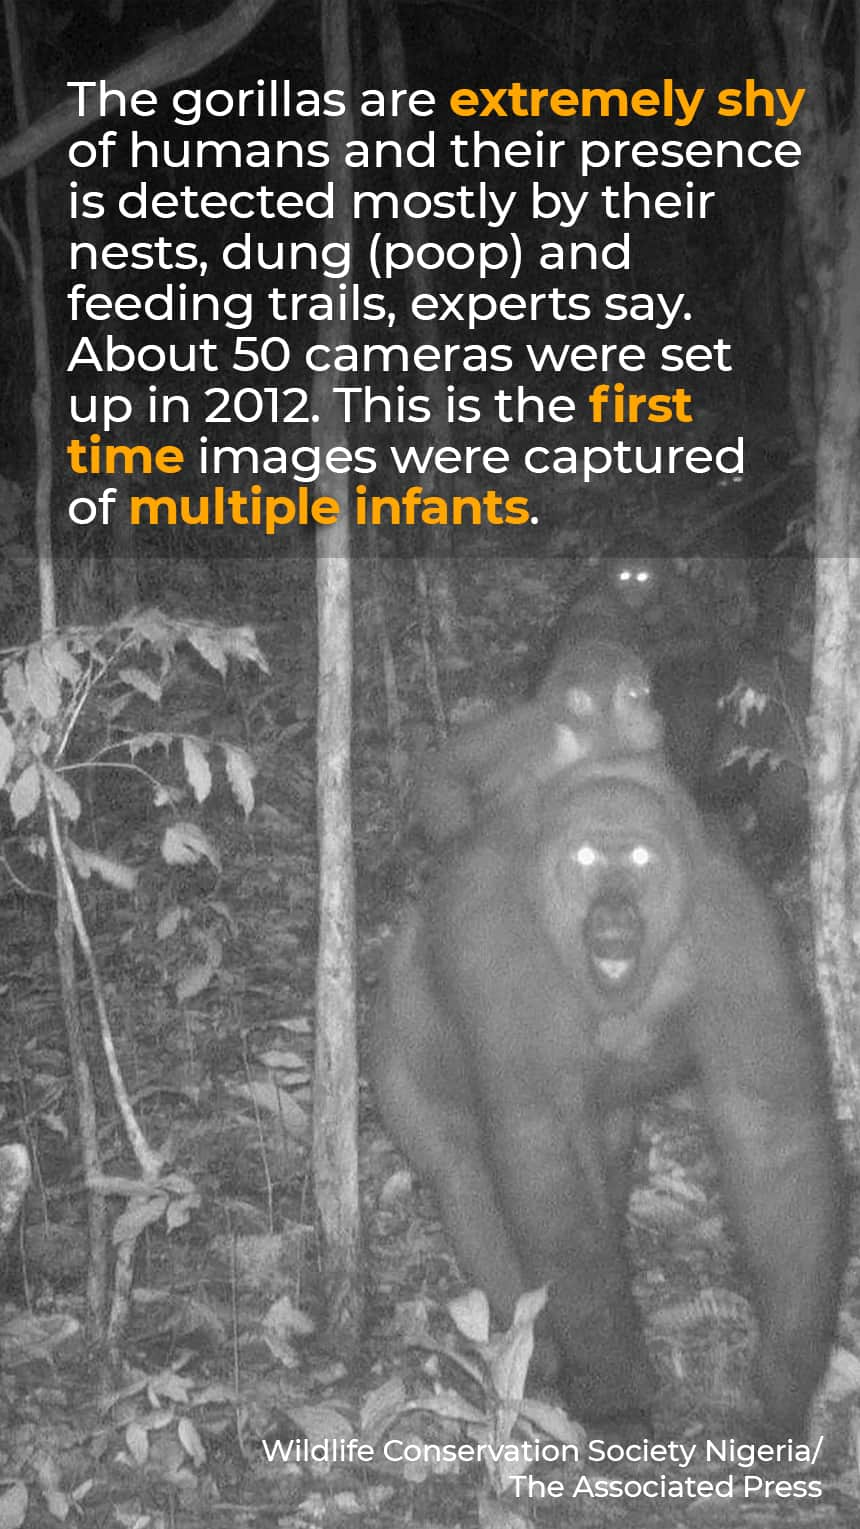 TEXT:  The gorillas are extremely shy of humans and their presence is detected mostly by their nests, dung (poop) and feeding trails, experts say. About 50 cameras were set up in 2012. This is the first time images were captured of multiple infants. IMAGE: Grainy picture of gorillas in the night